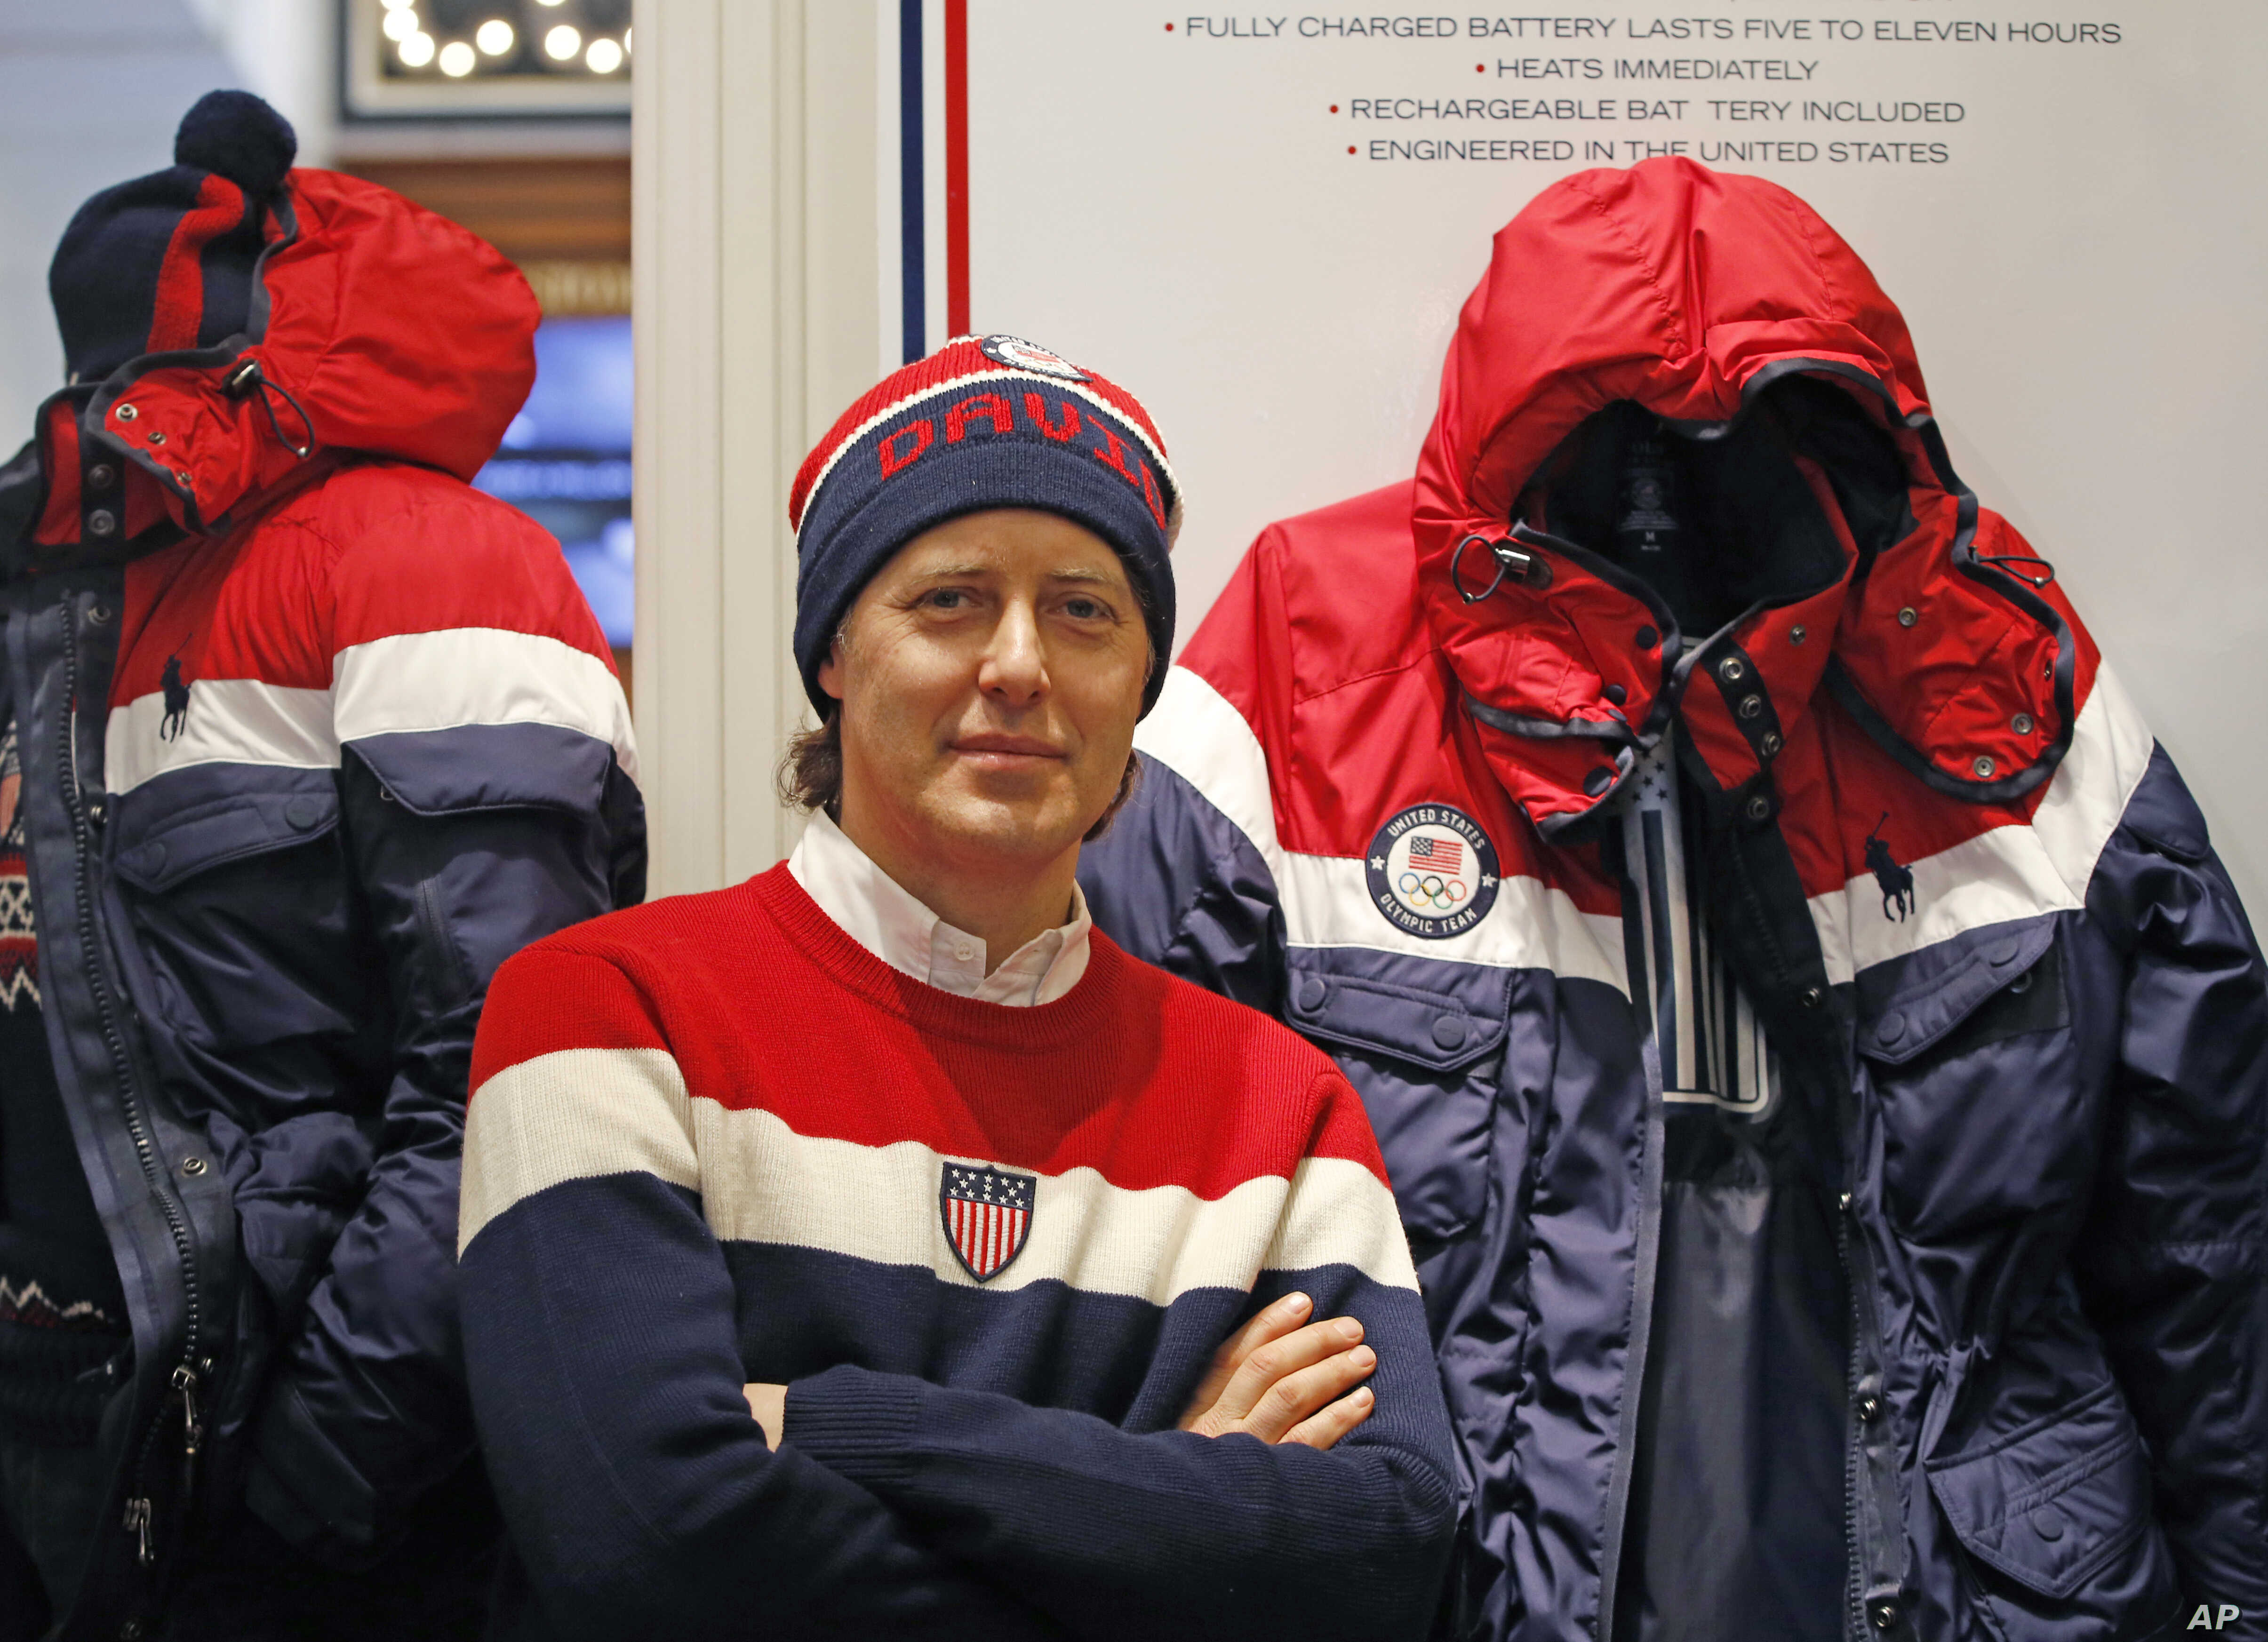 David Lauren poses beside Team USA's Opening Ceremony parka, which features a battery-powered heating element inside to keep athletes warm during the Winter Olympics in Pyeongchang, South Korea, Monday, Jan. 22, 2018, in New York.